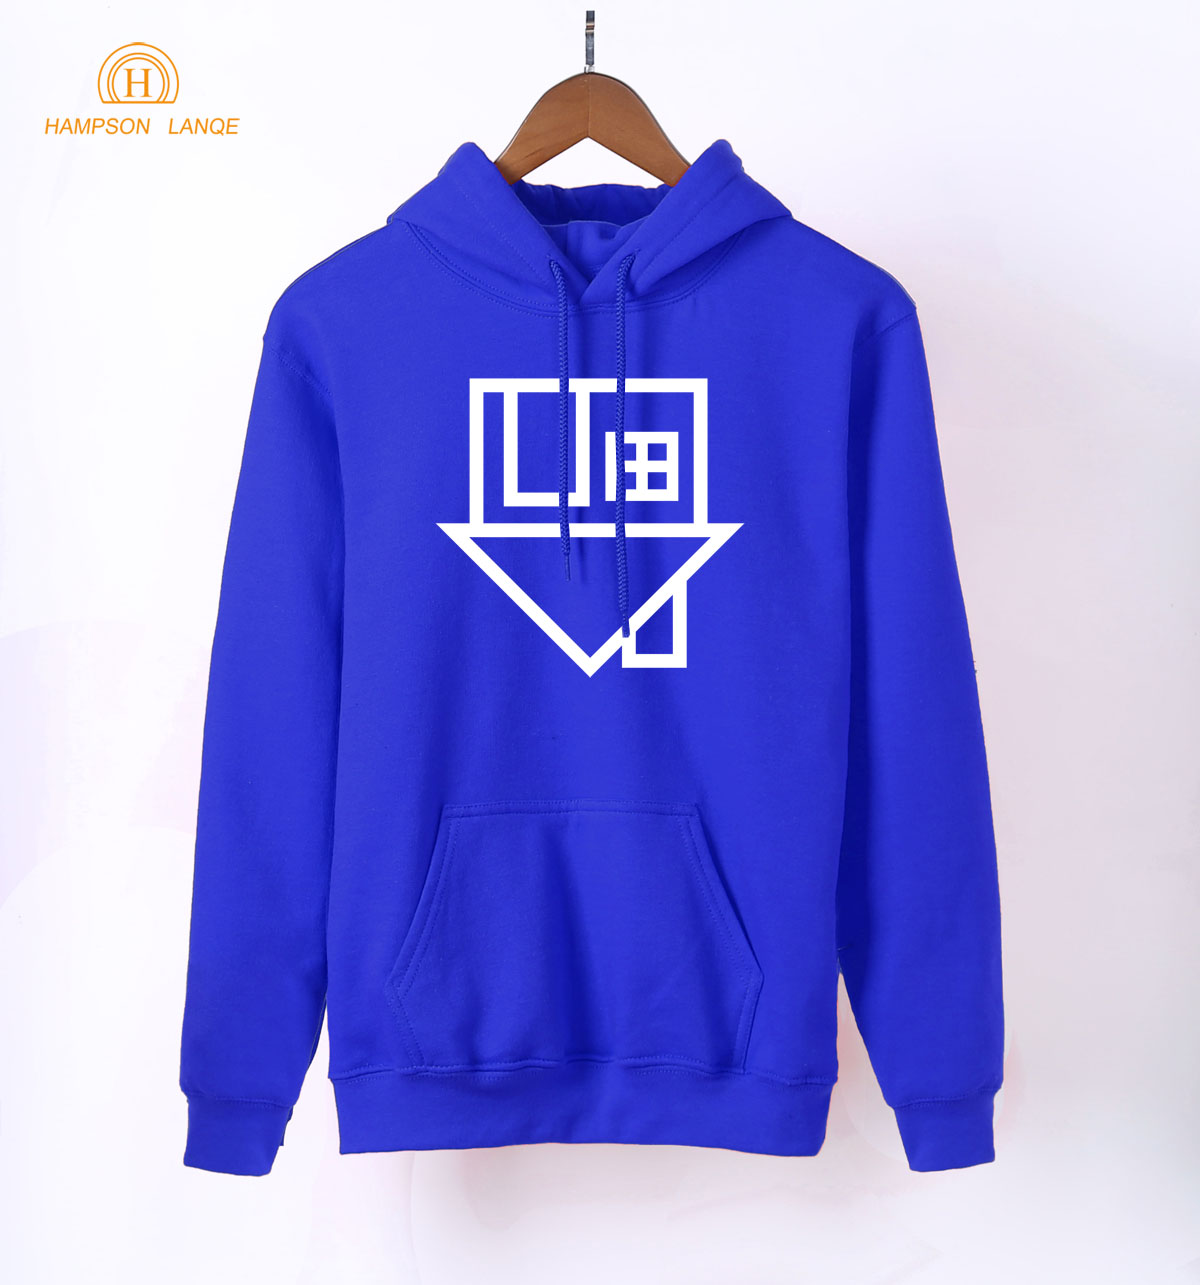 Rock Band Home House Print Casual Hoodies Women 2018 Spring Autumn Cool Sweatshirt Womens Fleece Hooded Brand Streetwear S-XXL